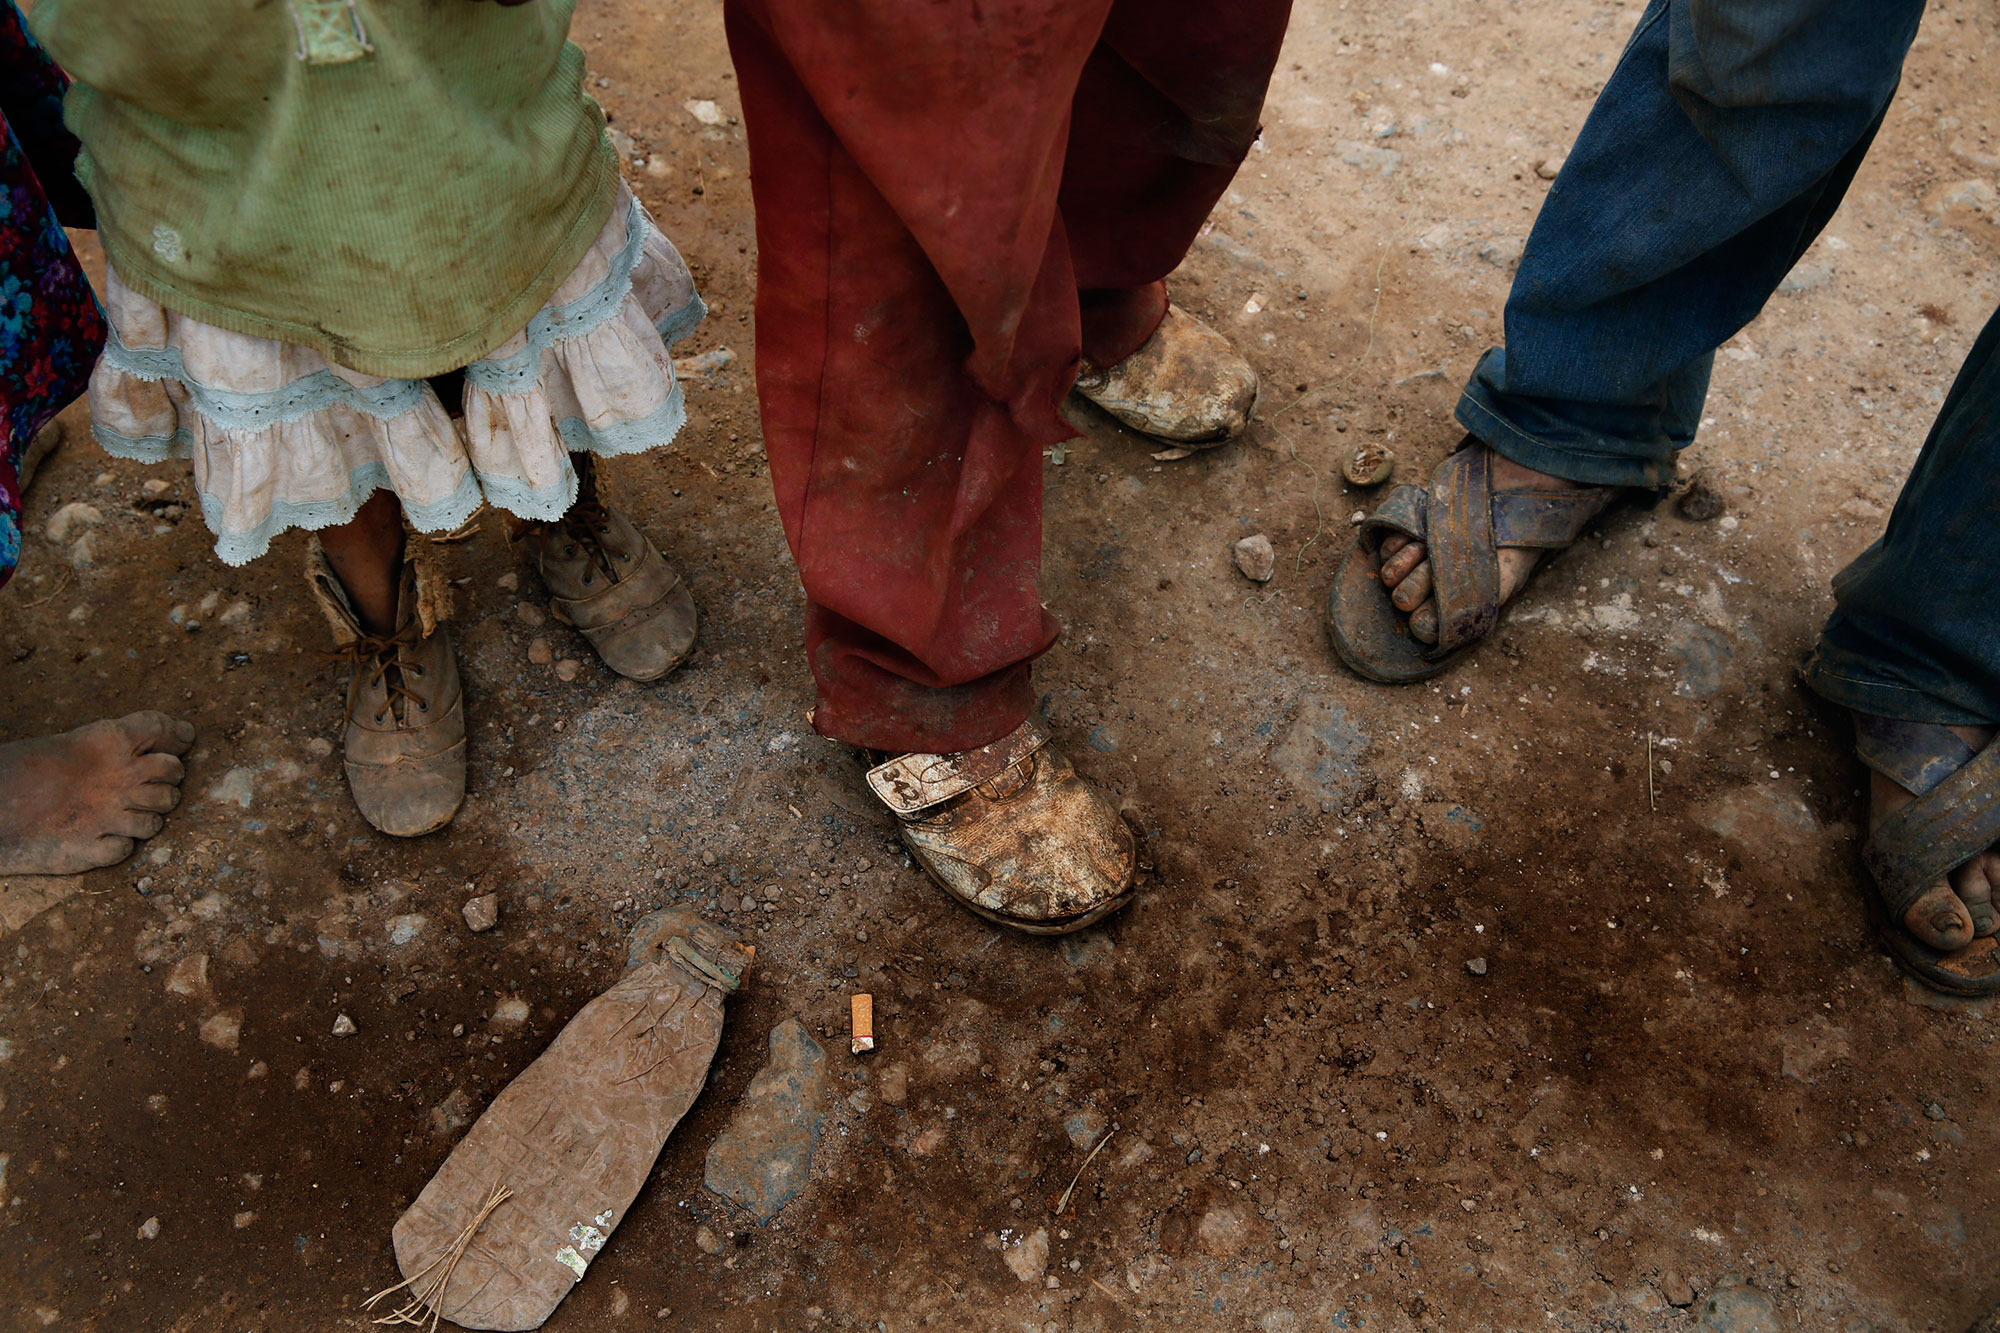 Toeing the Poverty Line